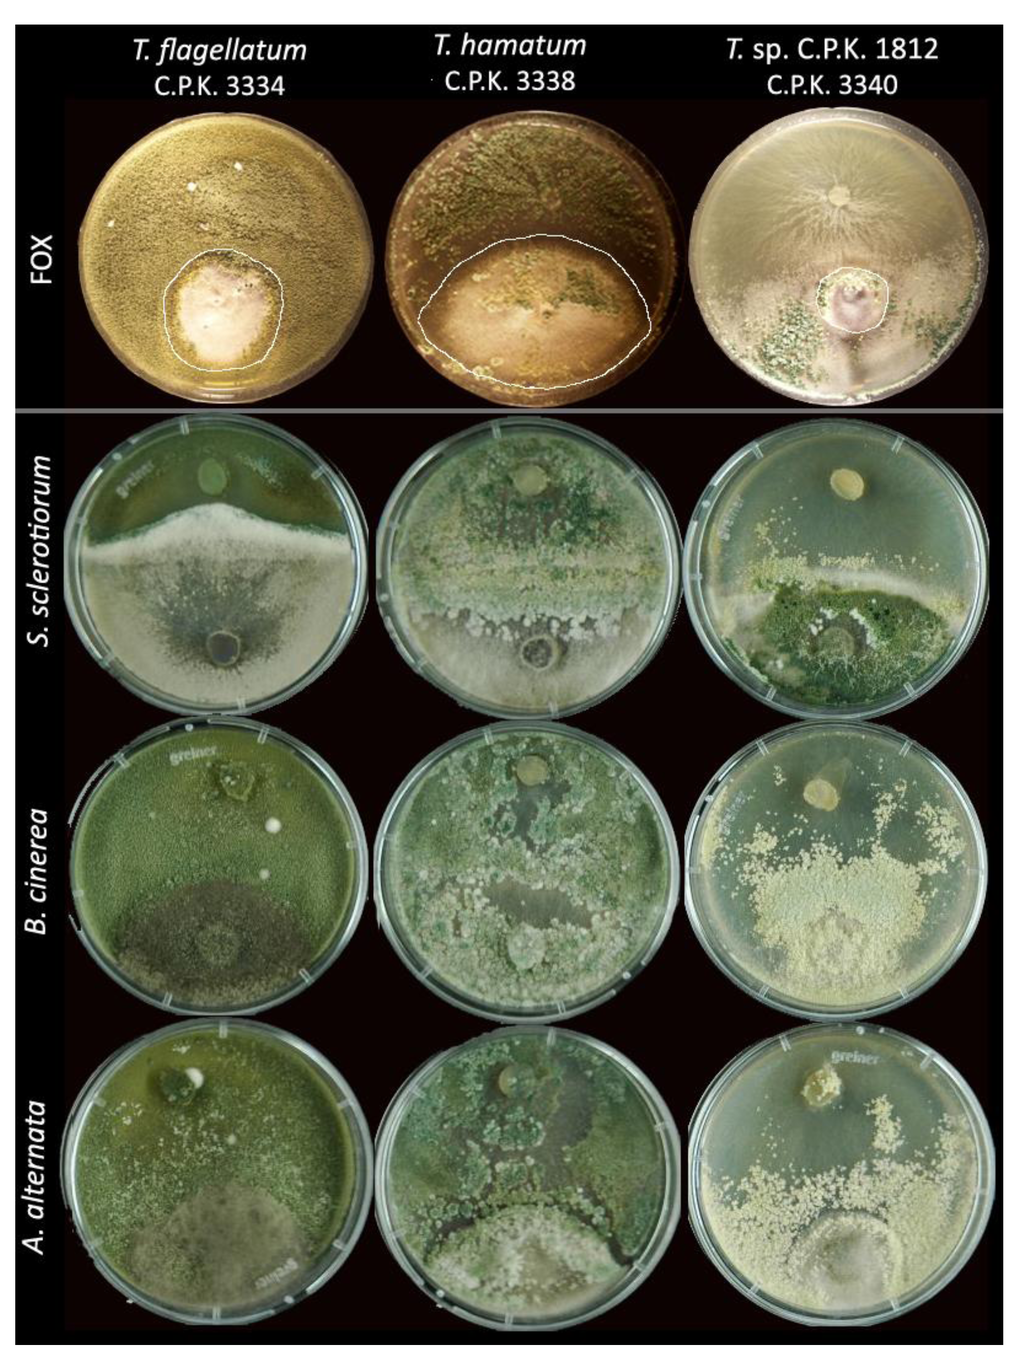 thesis on alternaria solani Pathogen biology the causal pathogen of early blight is the fungus alternaria solani there is no known sexual stage and hence it is classified as a deuteromycete.